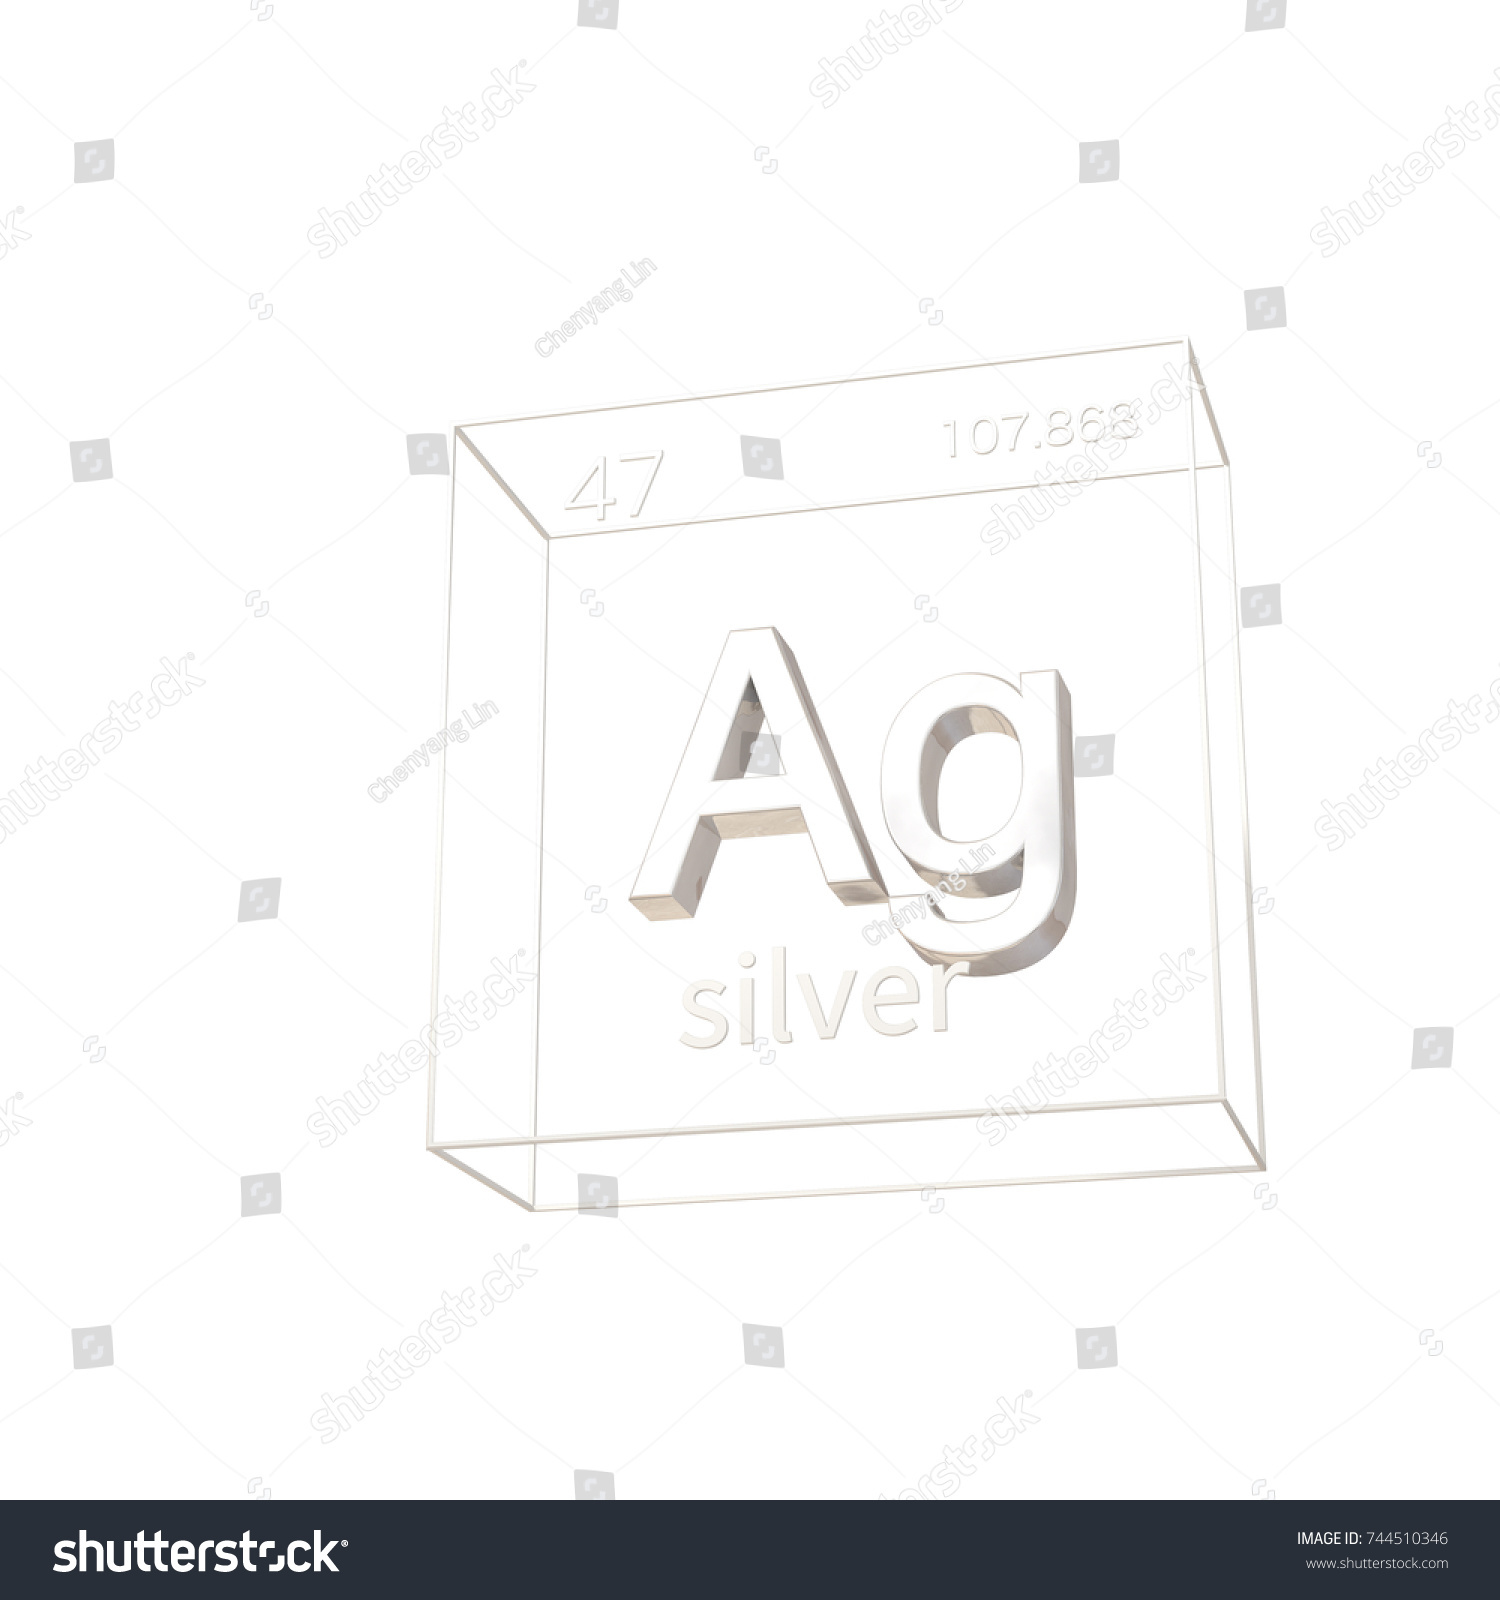 Periodic table gold and silver choice image periodic table images periodic table gold and silver choice image periodic table images 3d render silver chemical element atomic gamestrikefo Choice Image